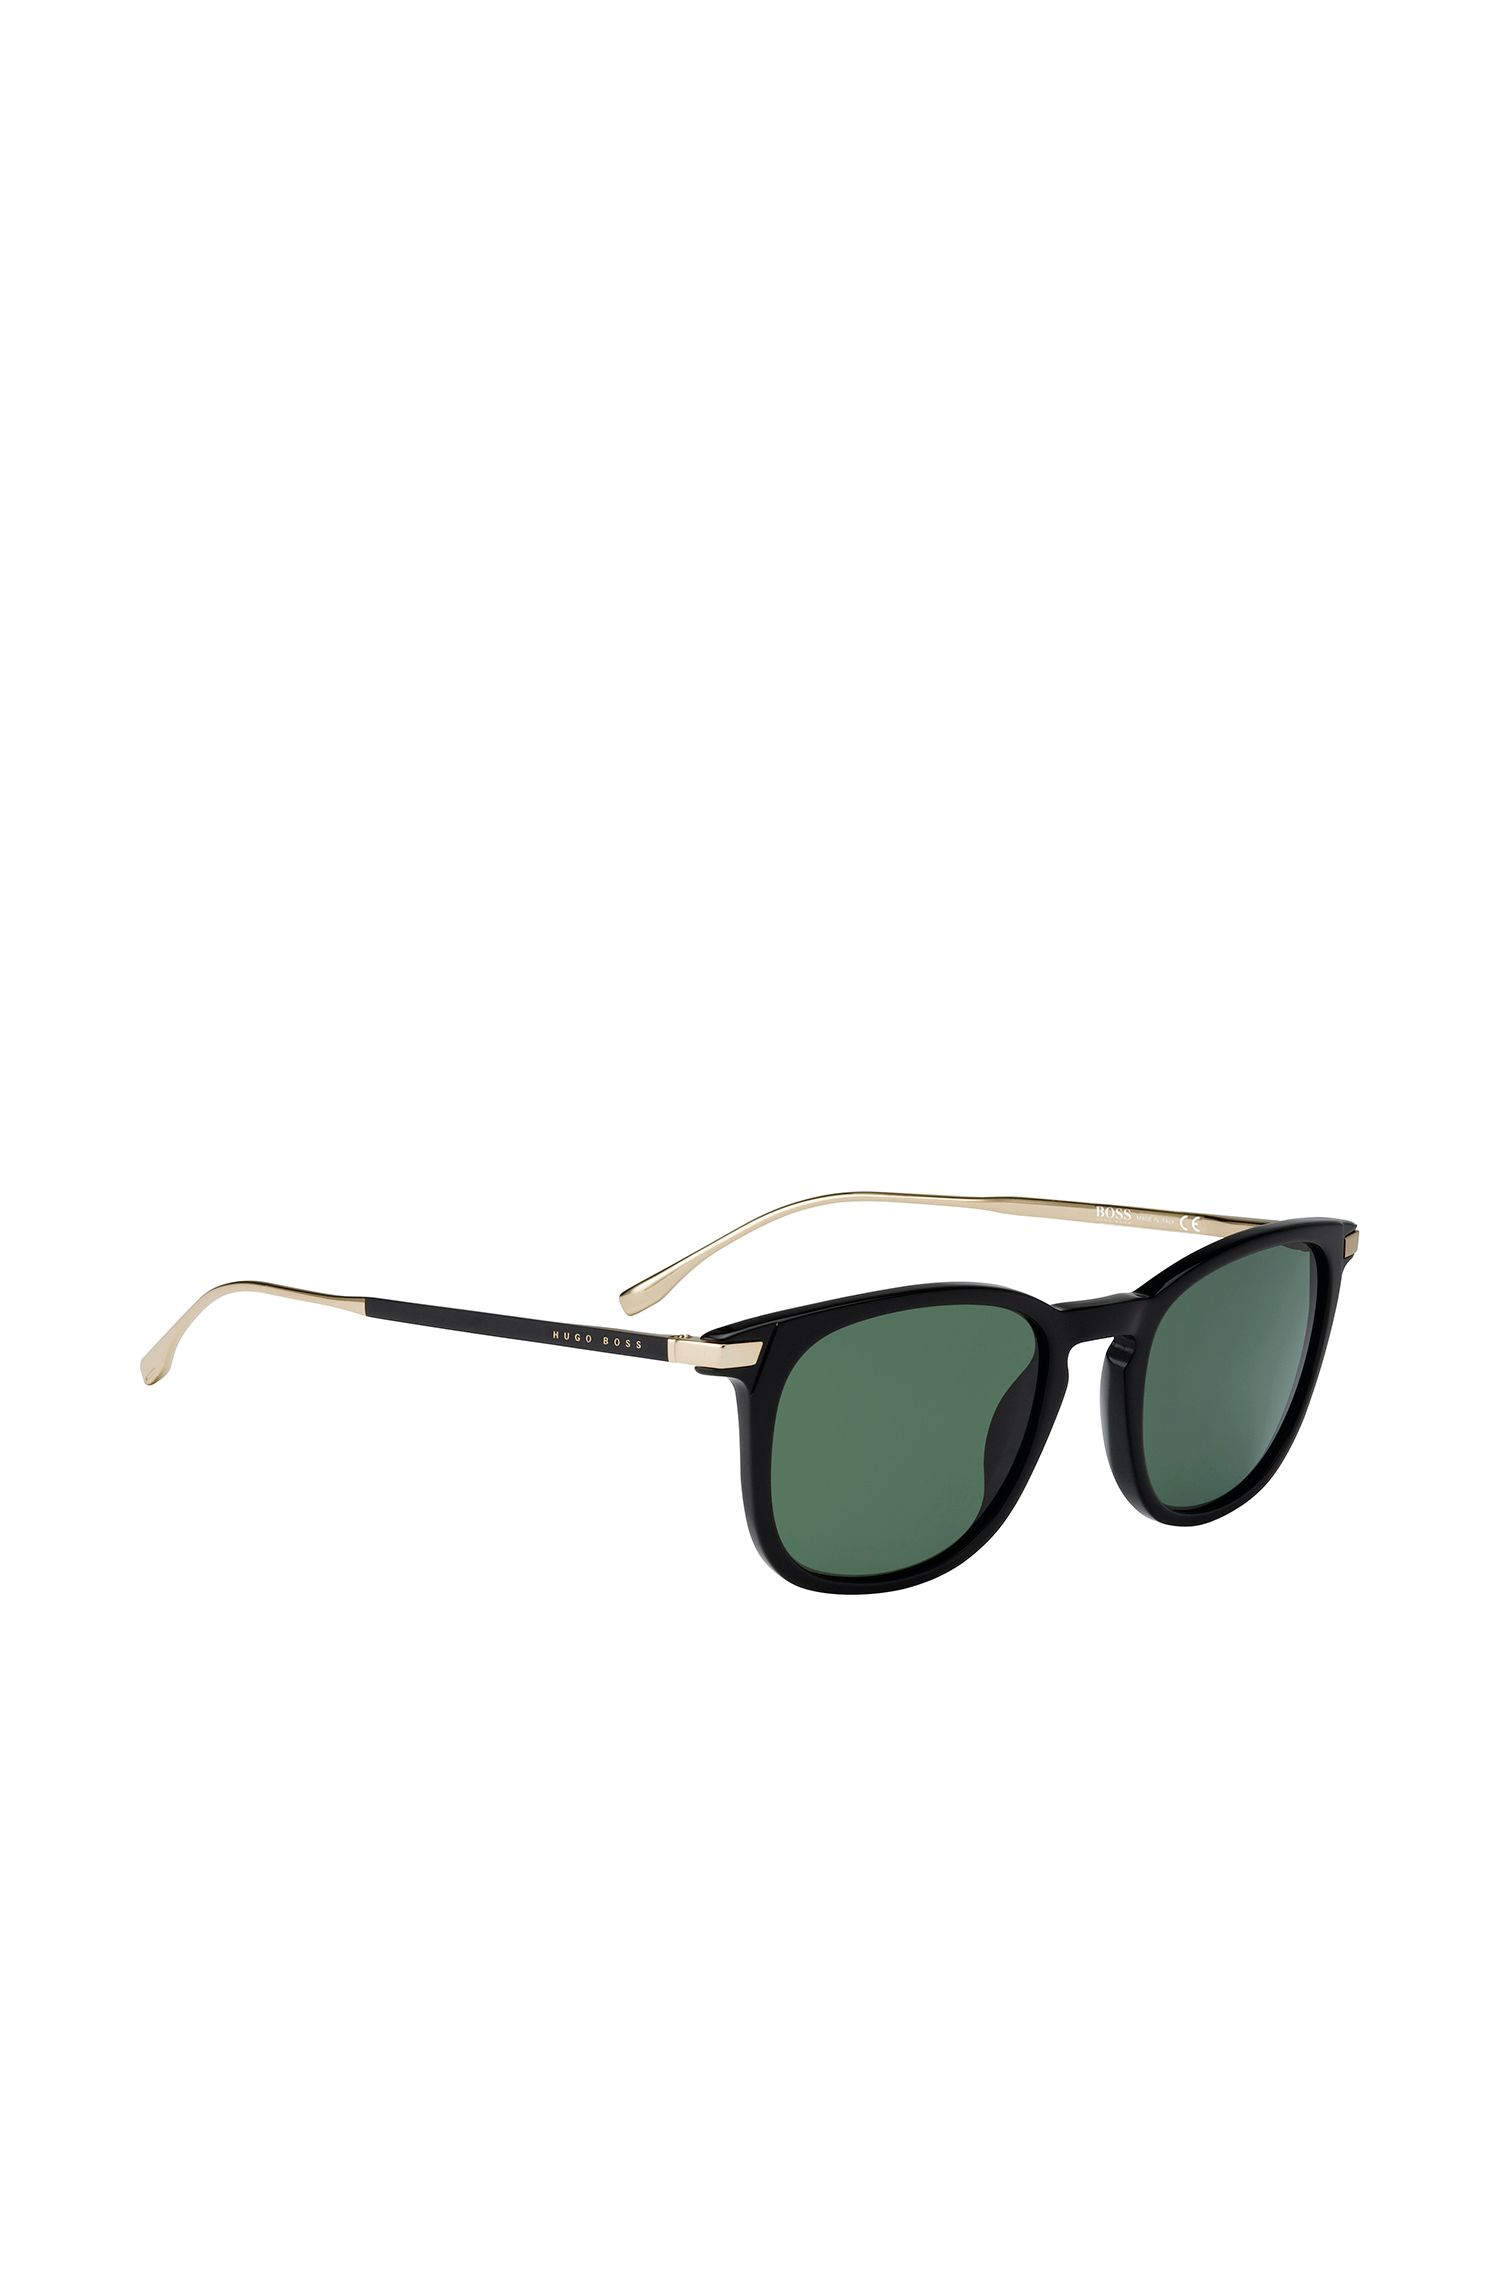 Brown Lens Acetate Sunglasses | BOSS 0783S